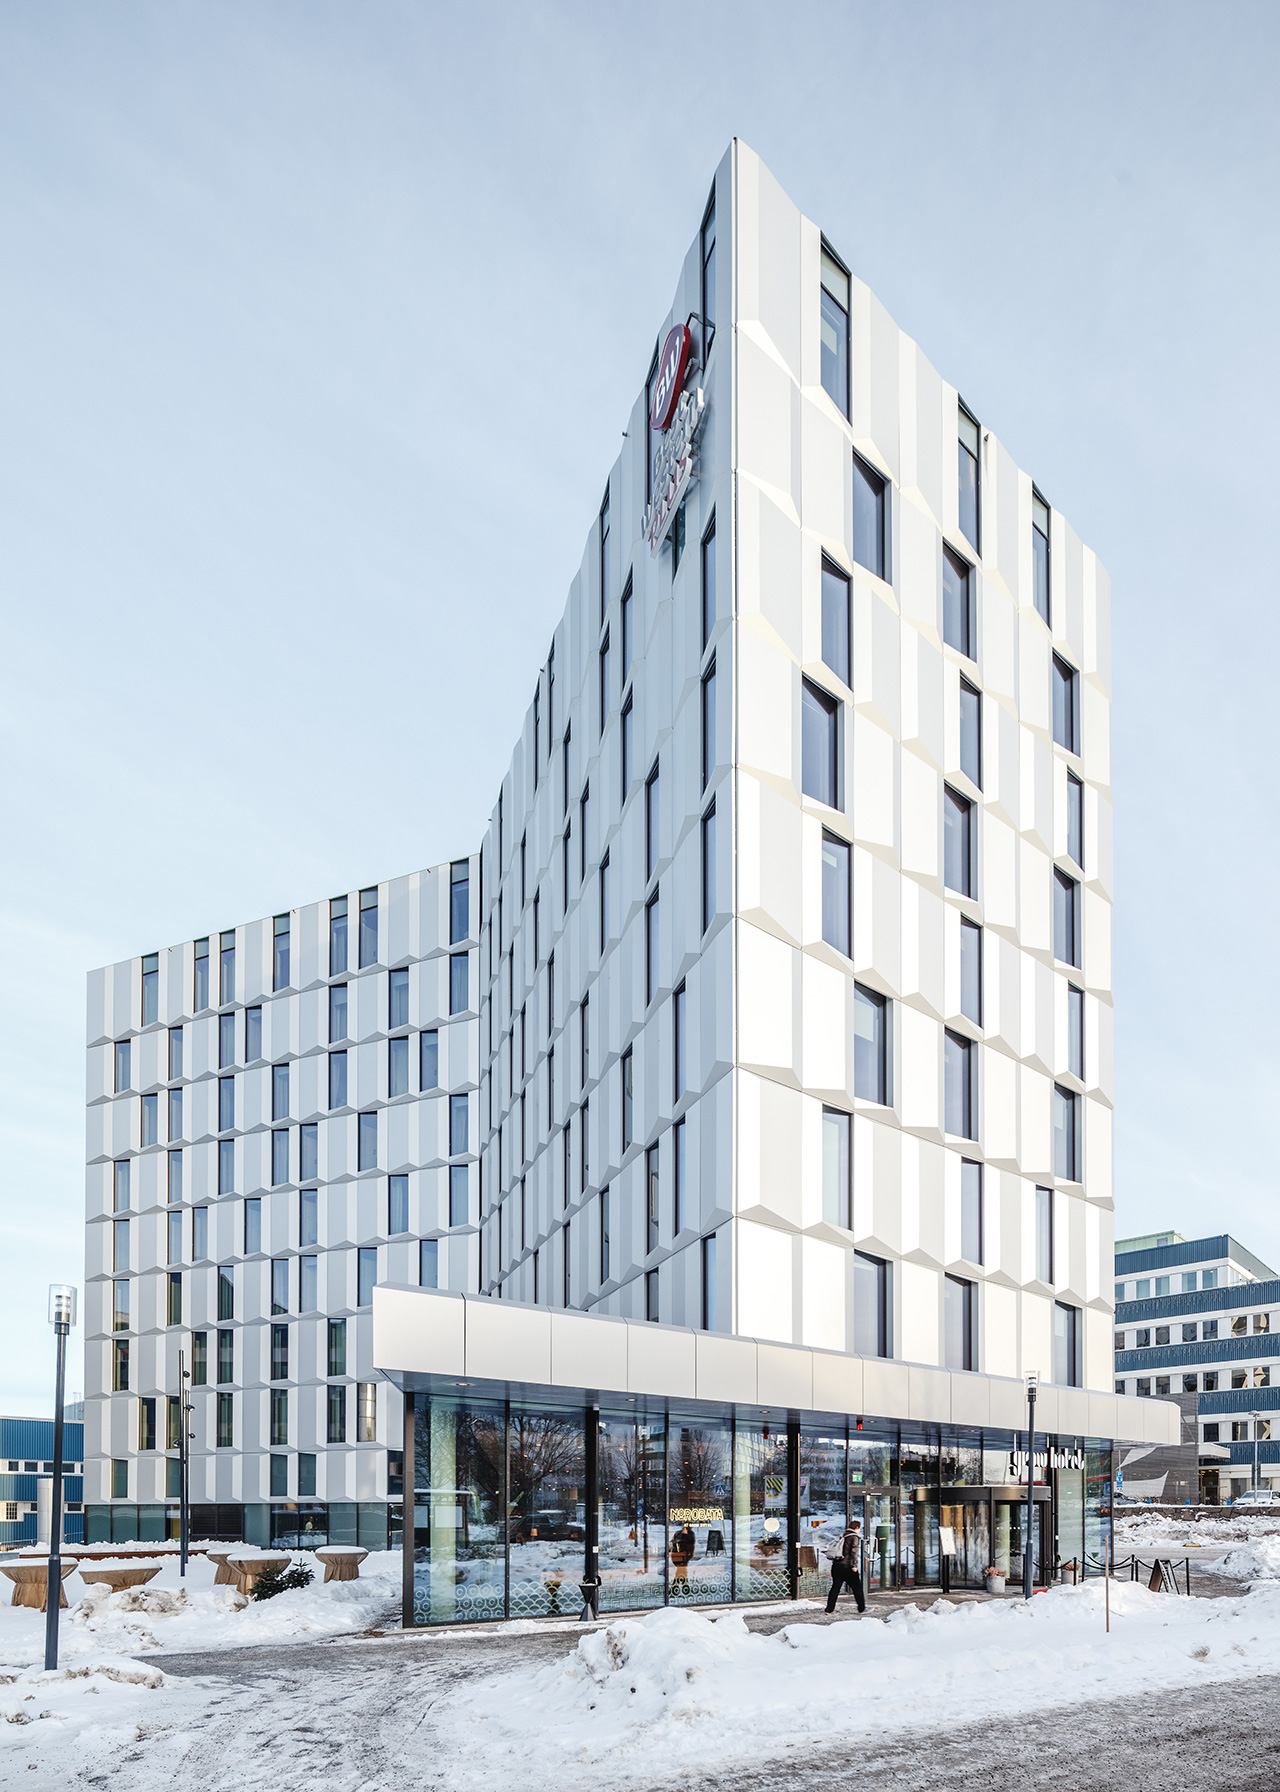 Modular panels transform the building from day to night.